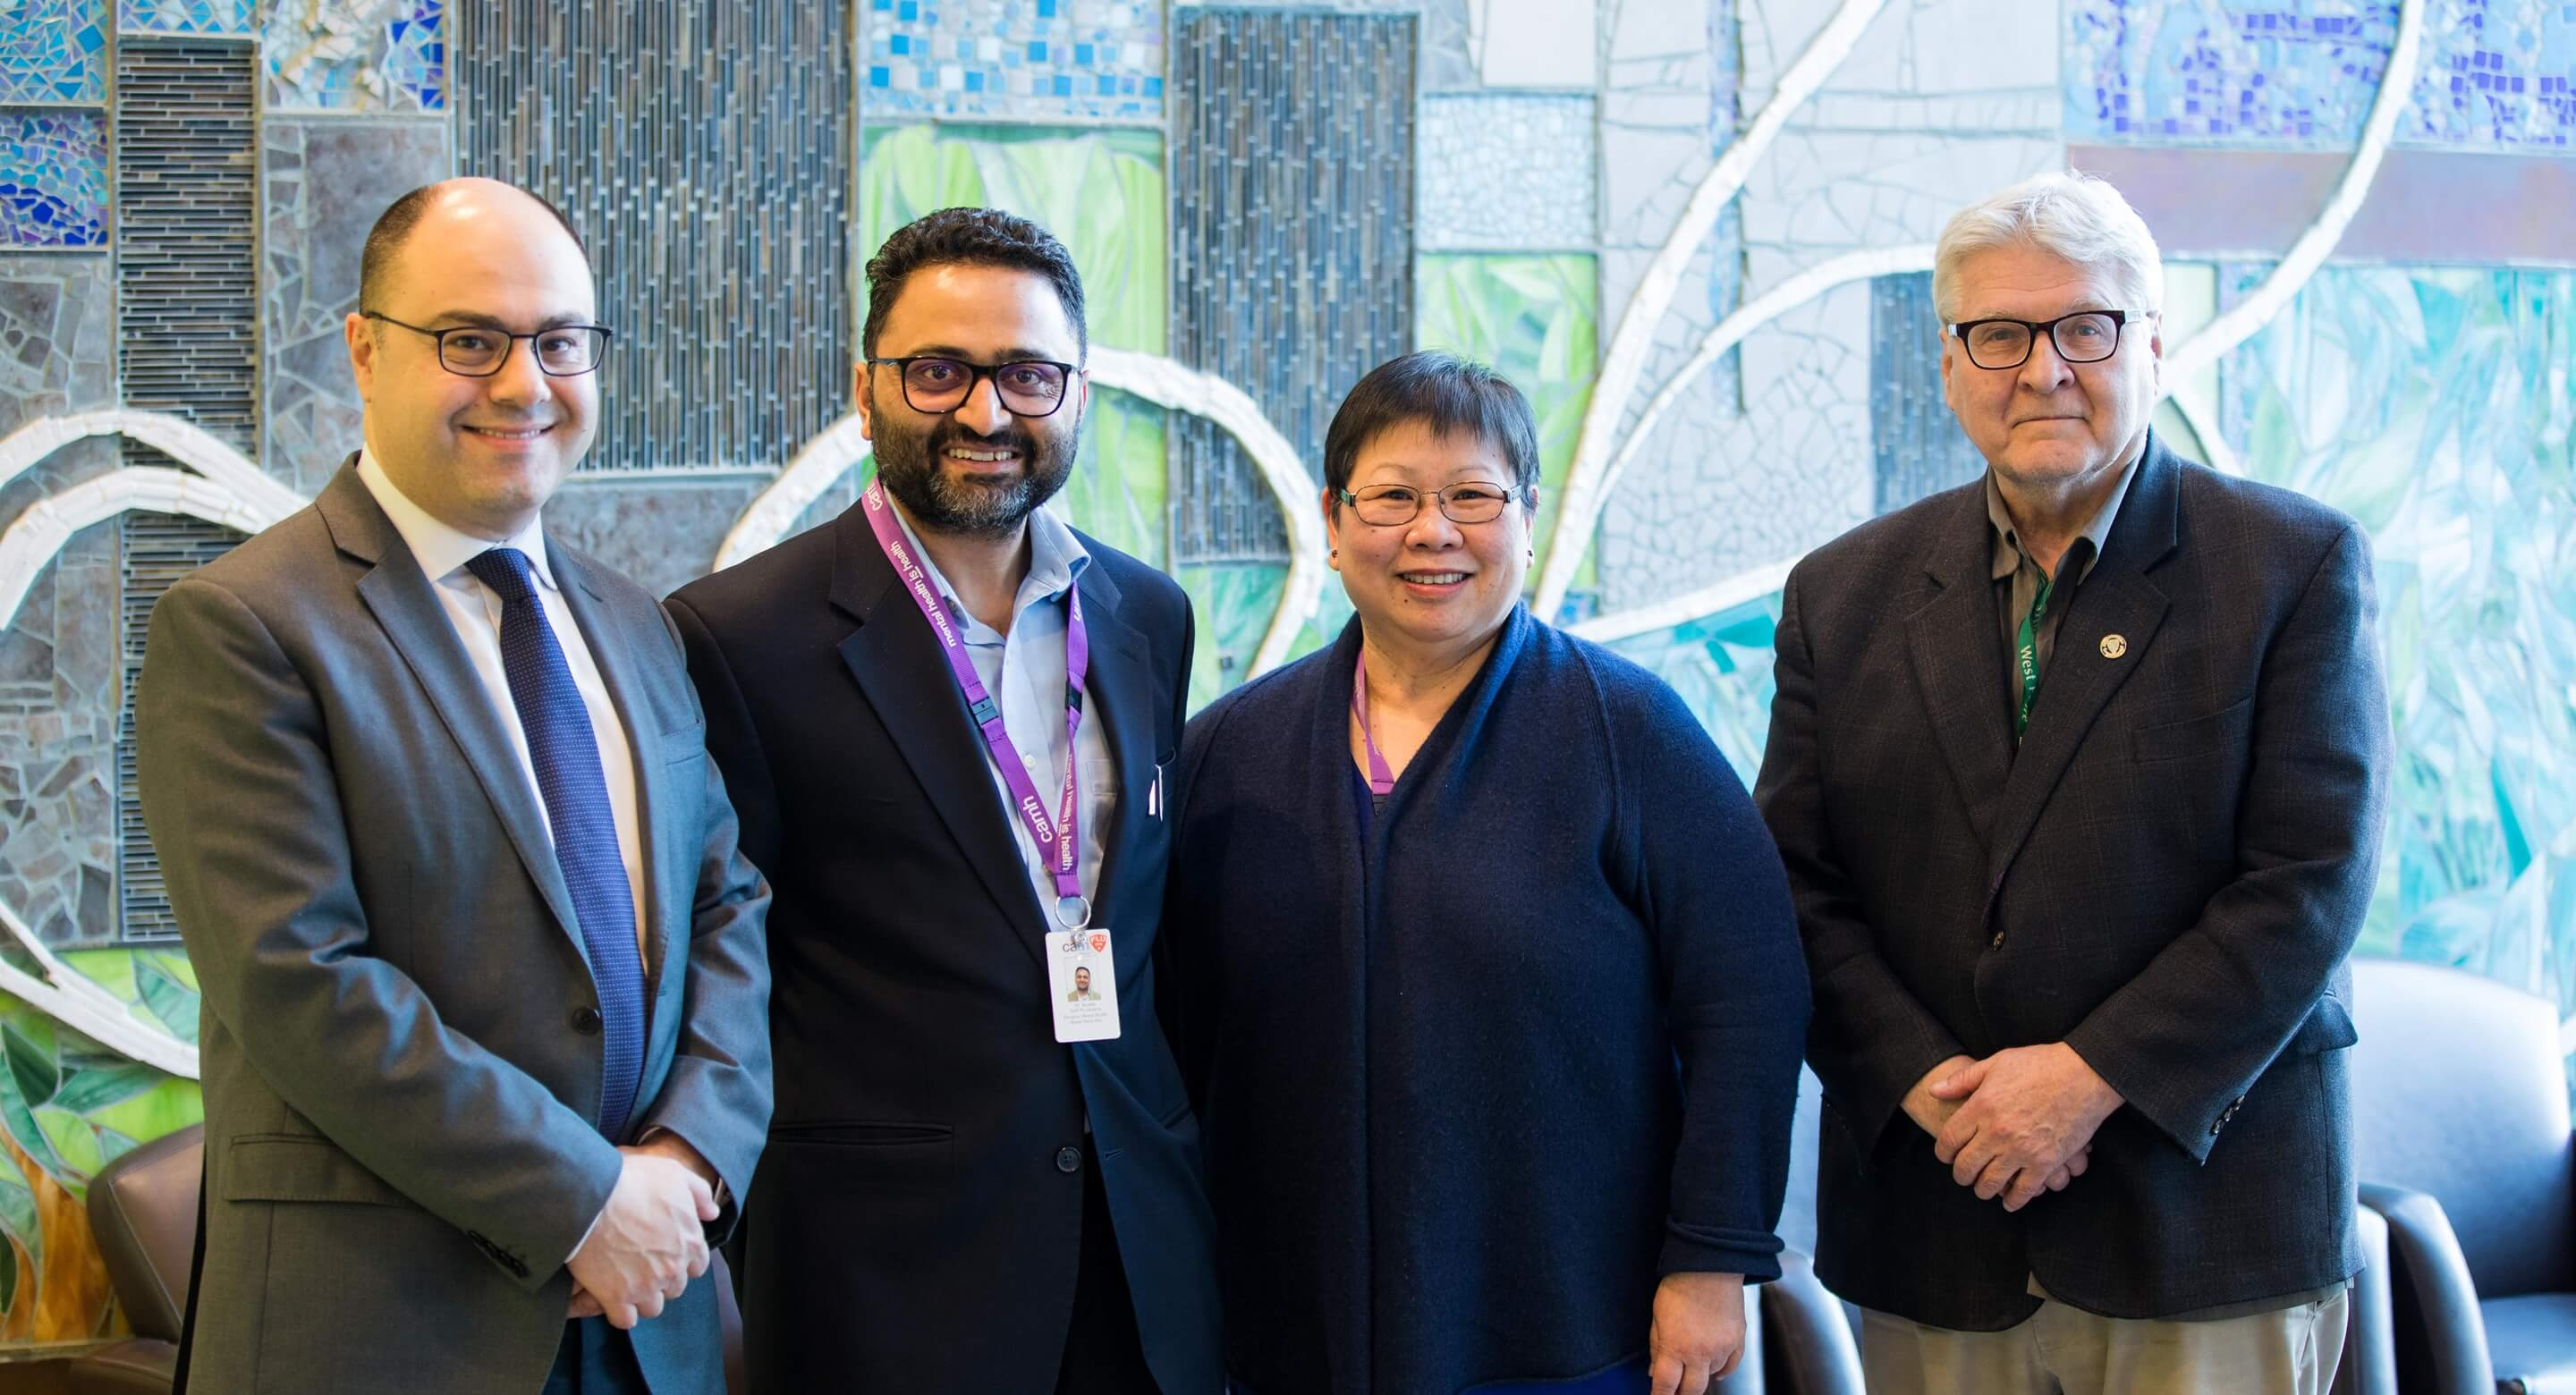 Integrated care pathway team members (from left): CAMH's Dr. Tarek Rajji, Dr. Sanjeev Kumar and Rong Ting, and Dr. Peter Derkach